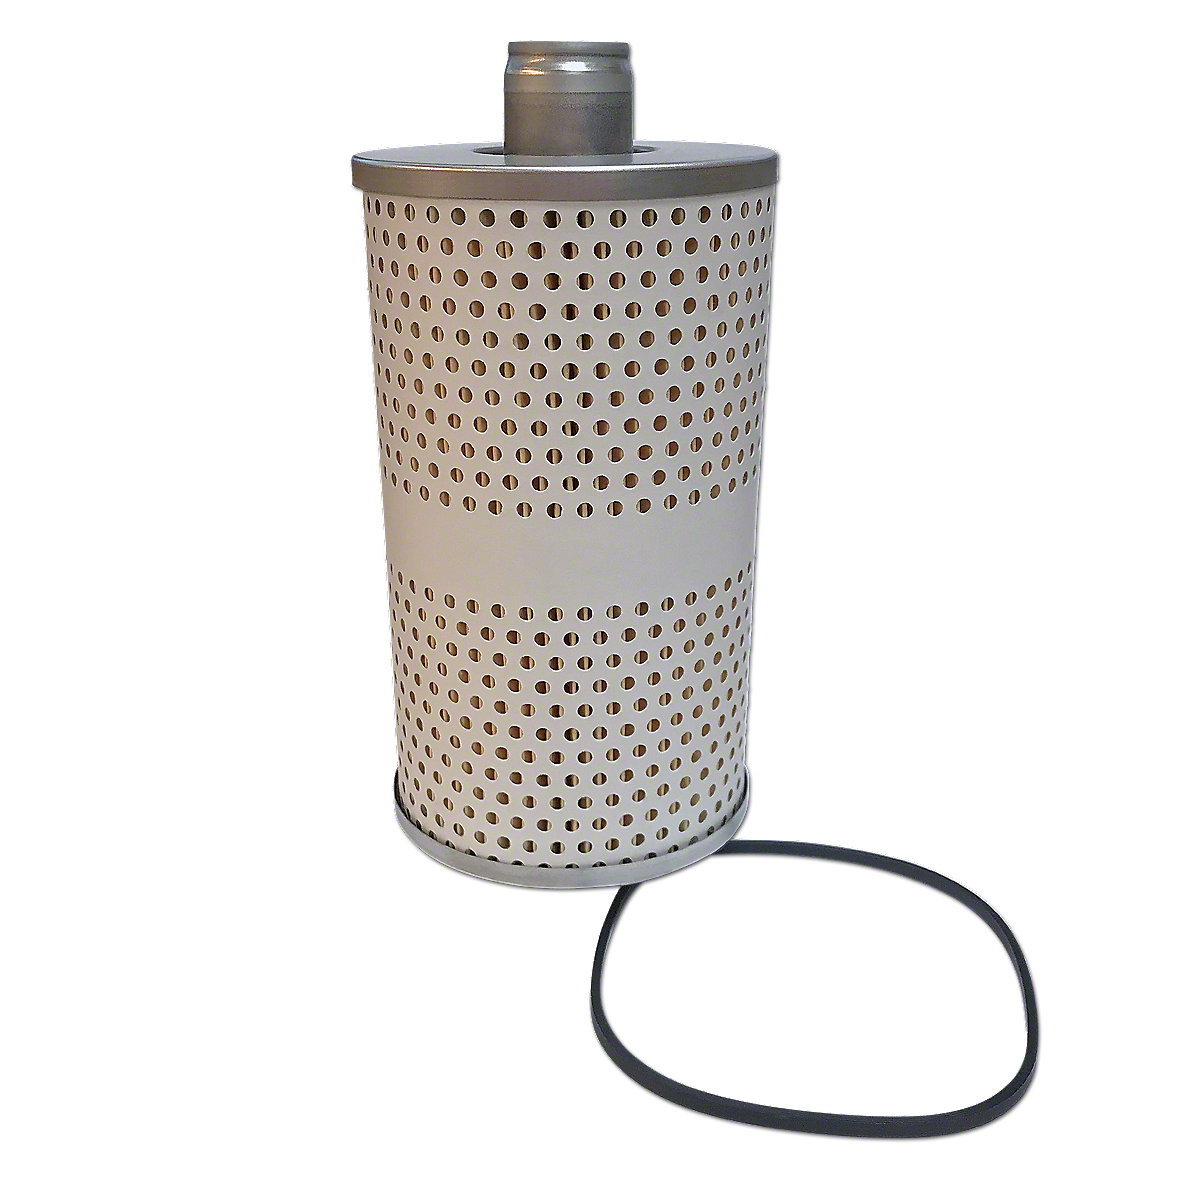 ABC094 Oil Filter Element With Gasket